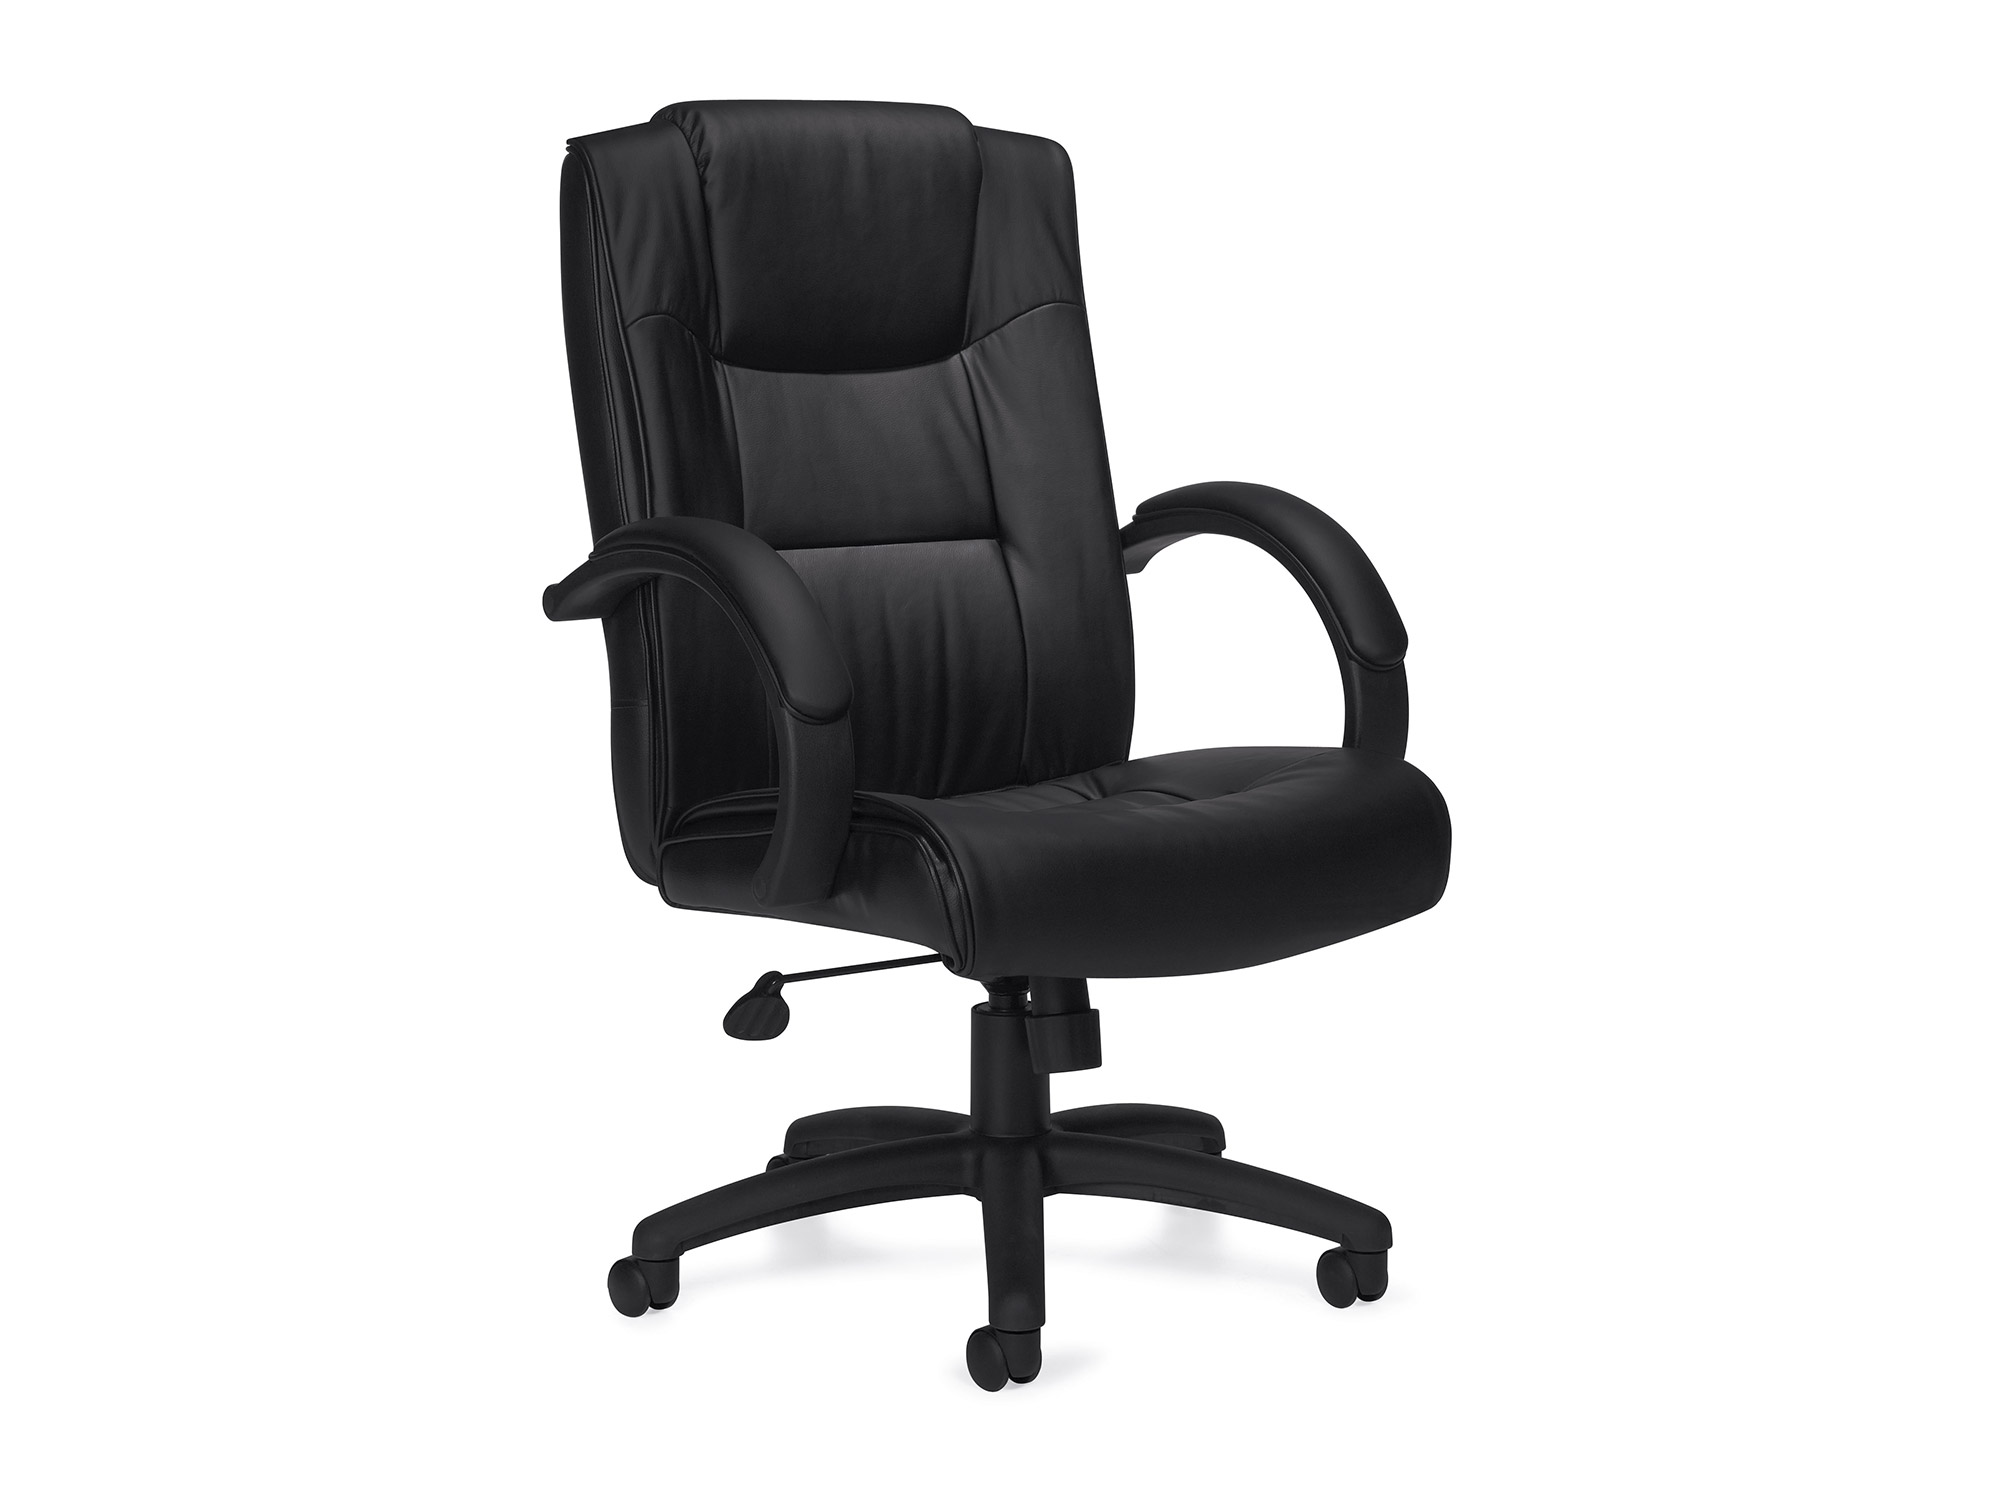 Chairs For Office #11618B